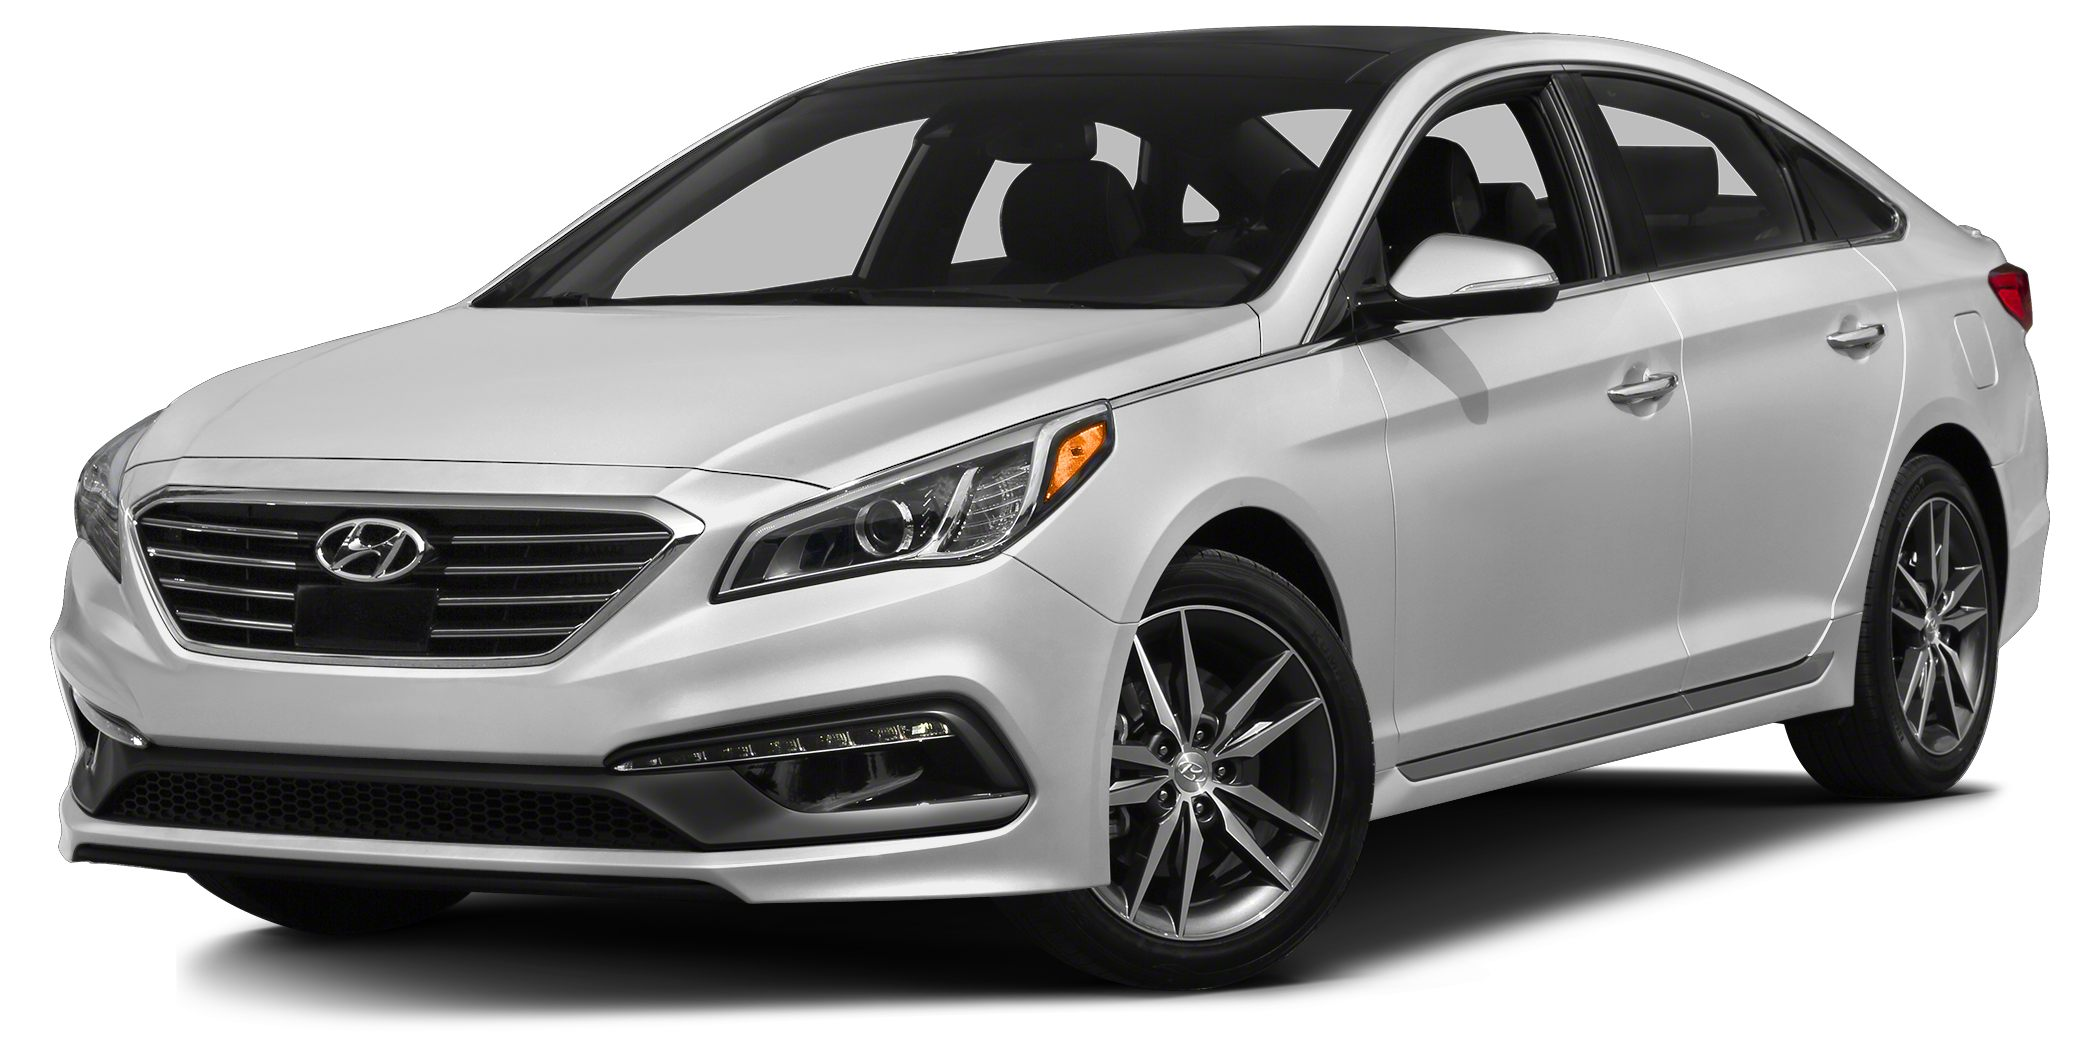 2015 Hyundai Sonata SE Price includes 1500 - Retail Bonus Cash Exp 0430 Miles 11Color Sym